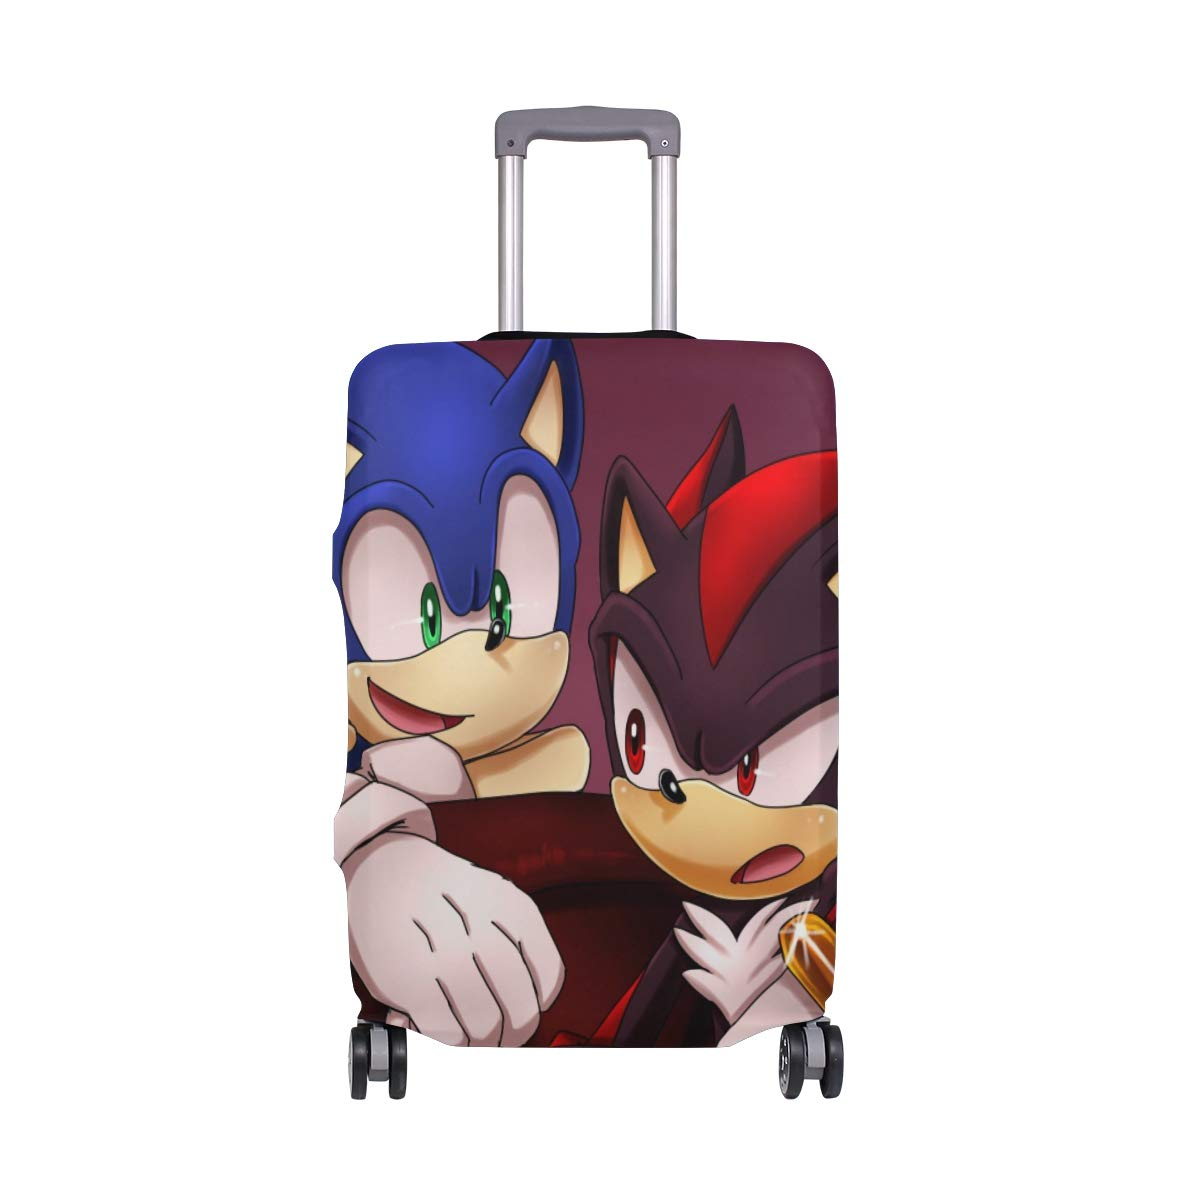 Sonic And Chip Cartoon Travel Luggage Cover Suitcase Protector Fits 26-28 Inch Washable Baggage Covers